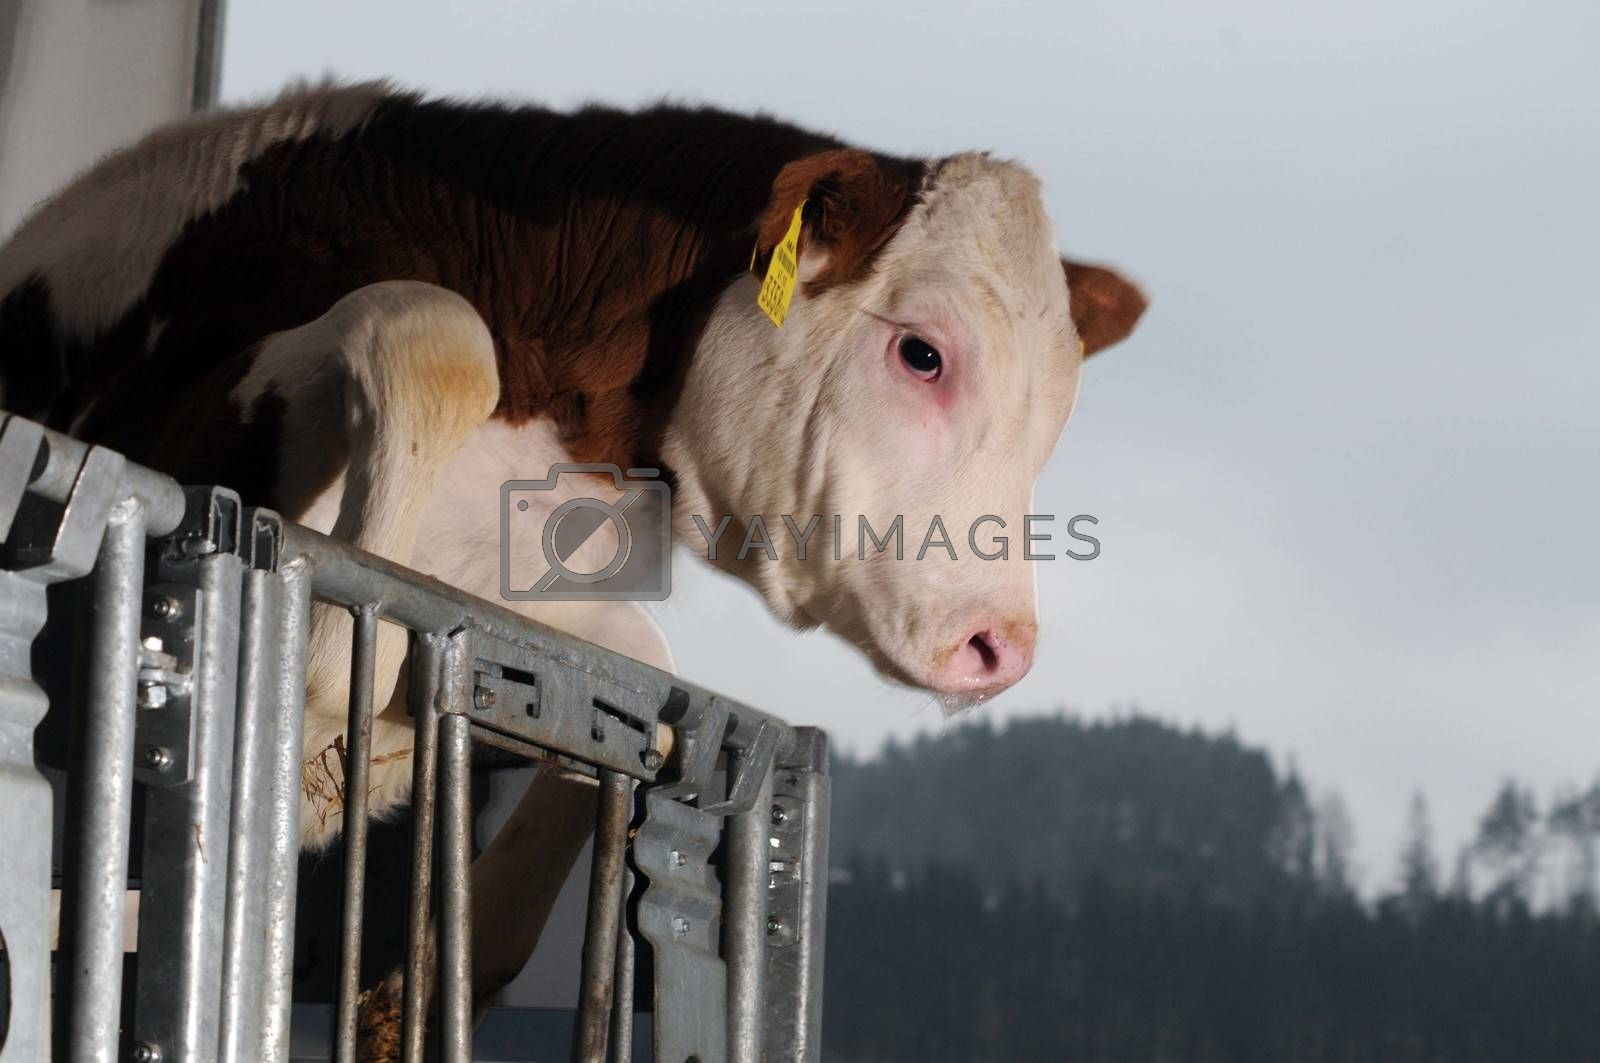 calf in the cowshed trying to jump over the fence